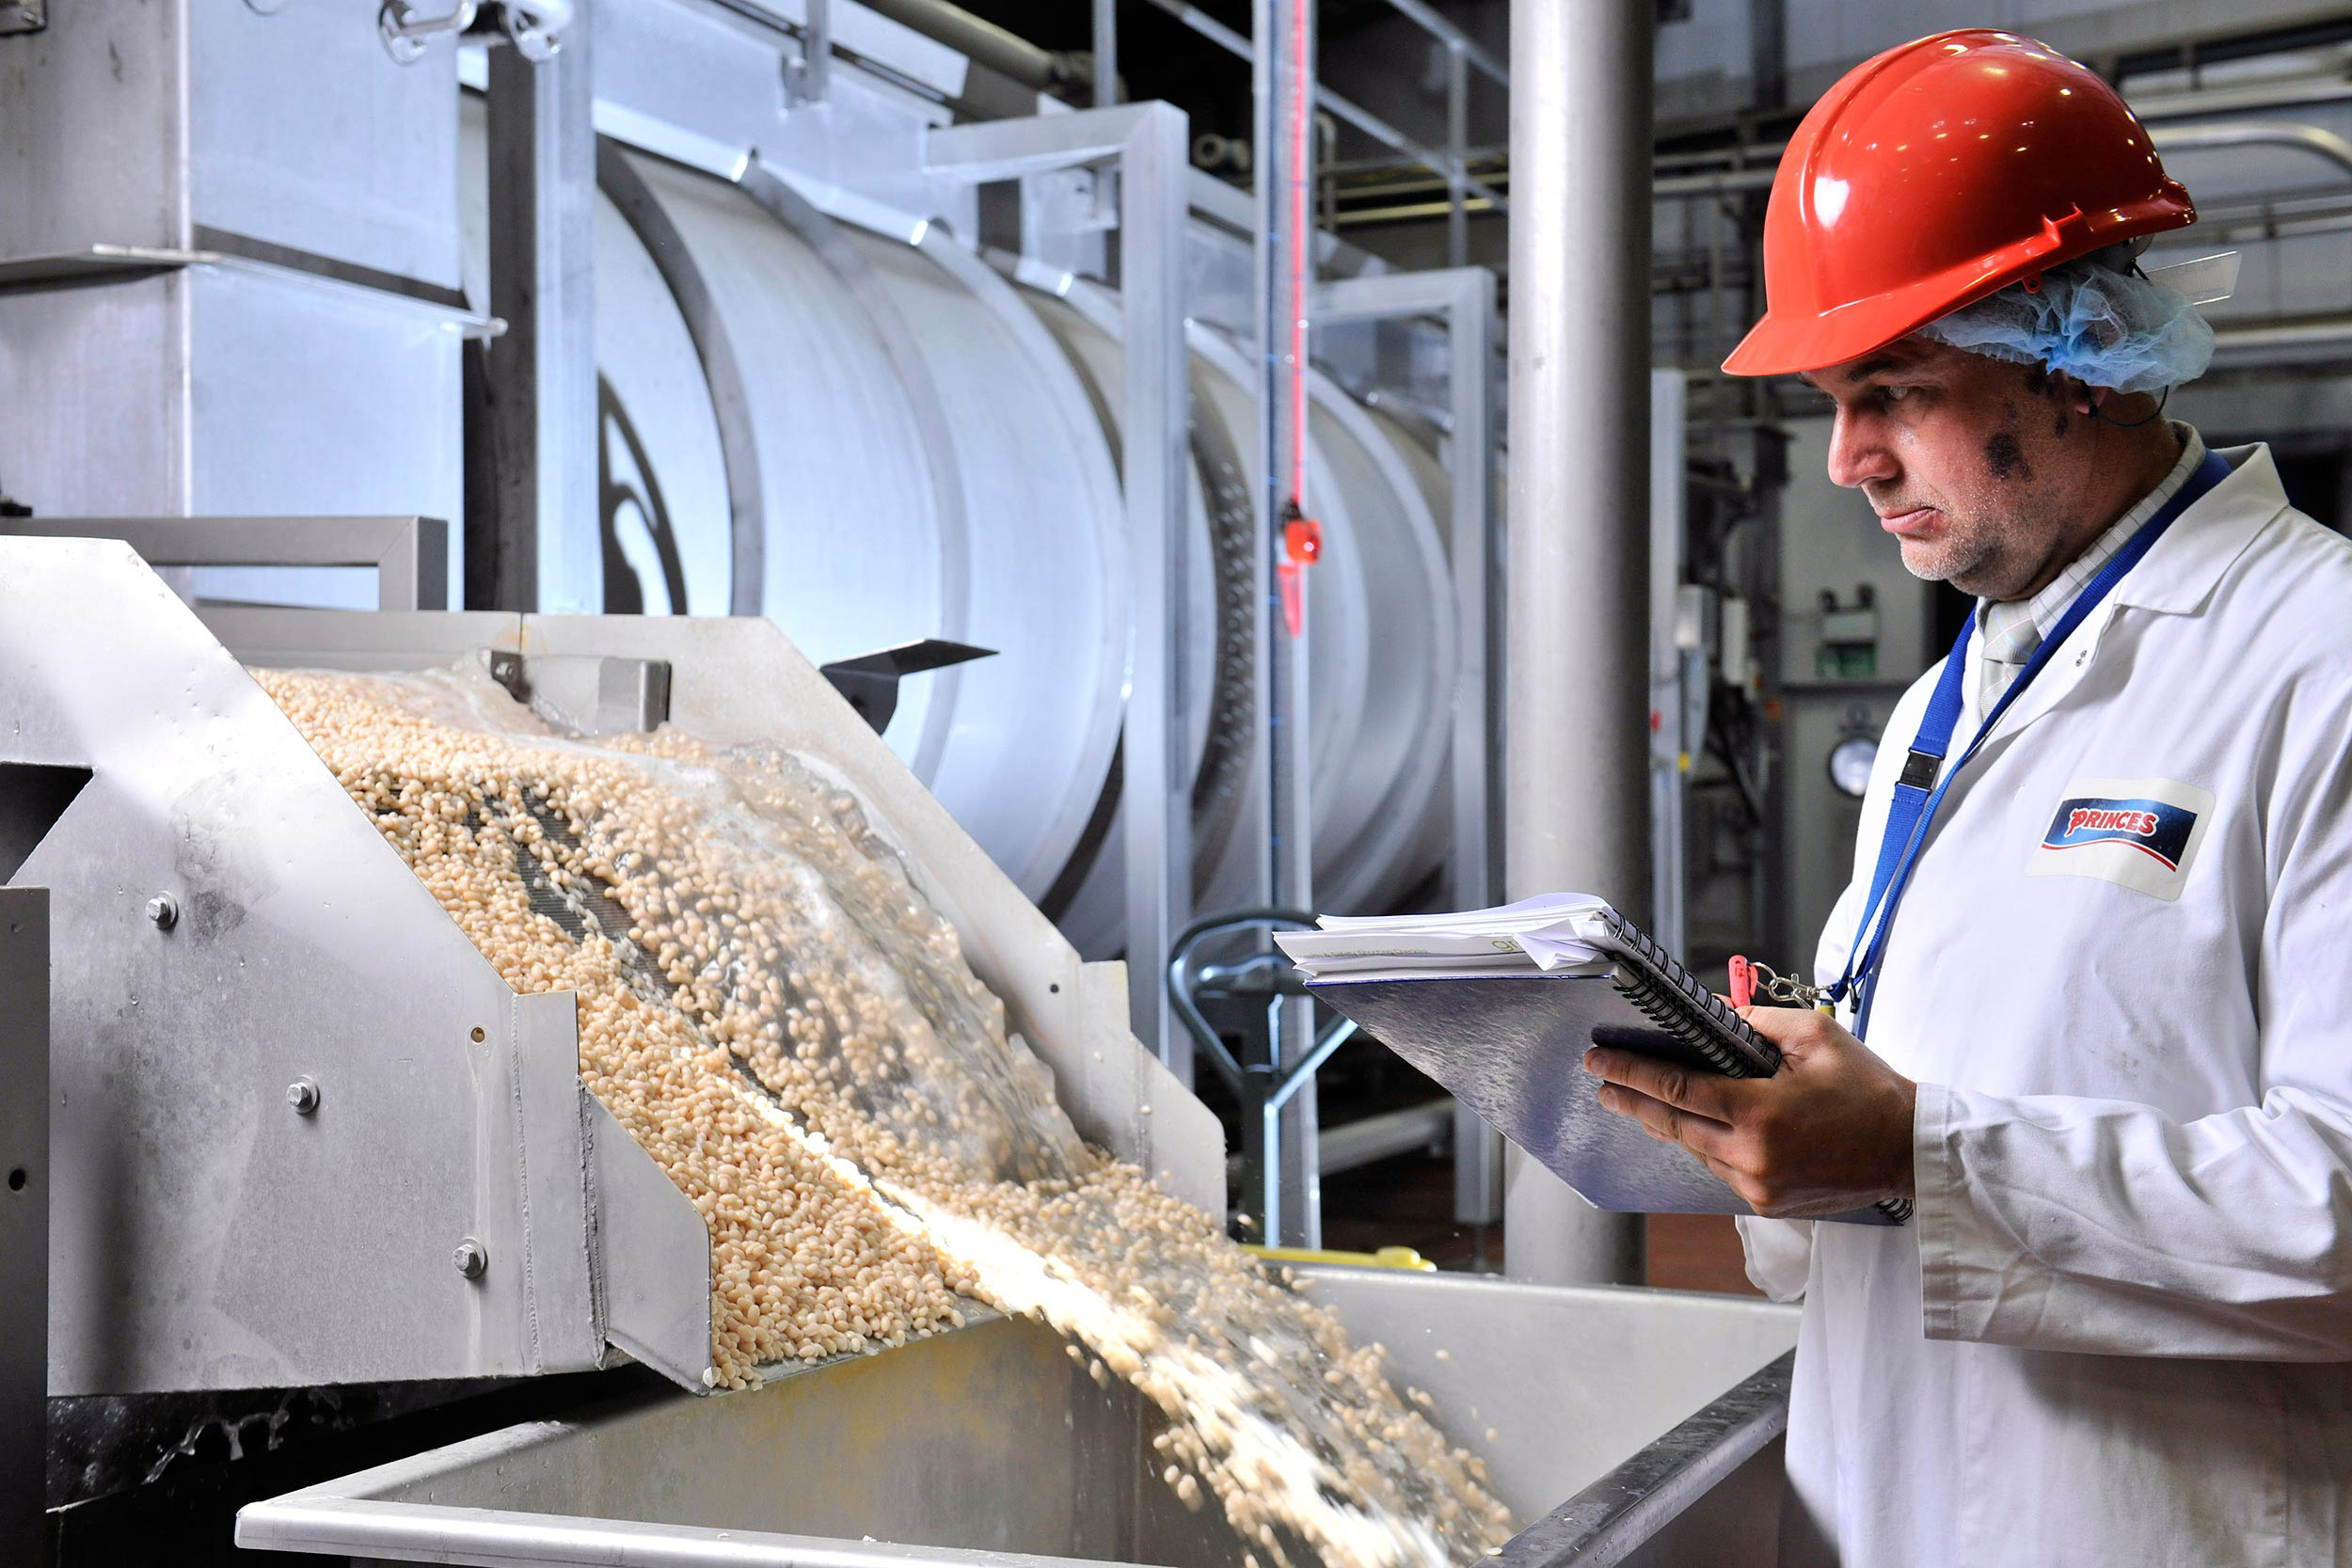 A man monitors a food production line at a Princes UK factory. Food manufacturing photographer Manchester photographer